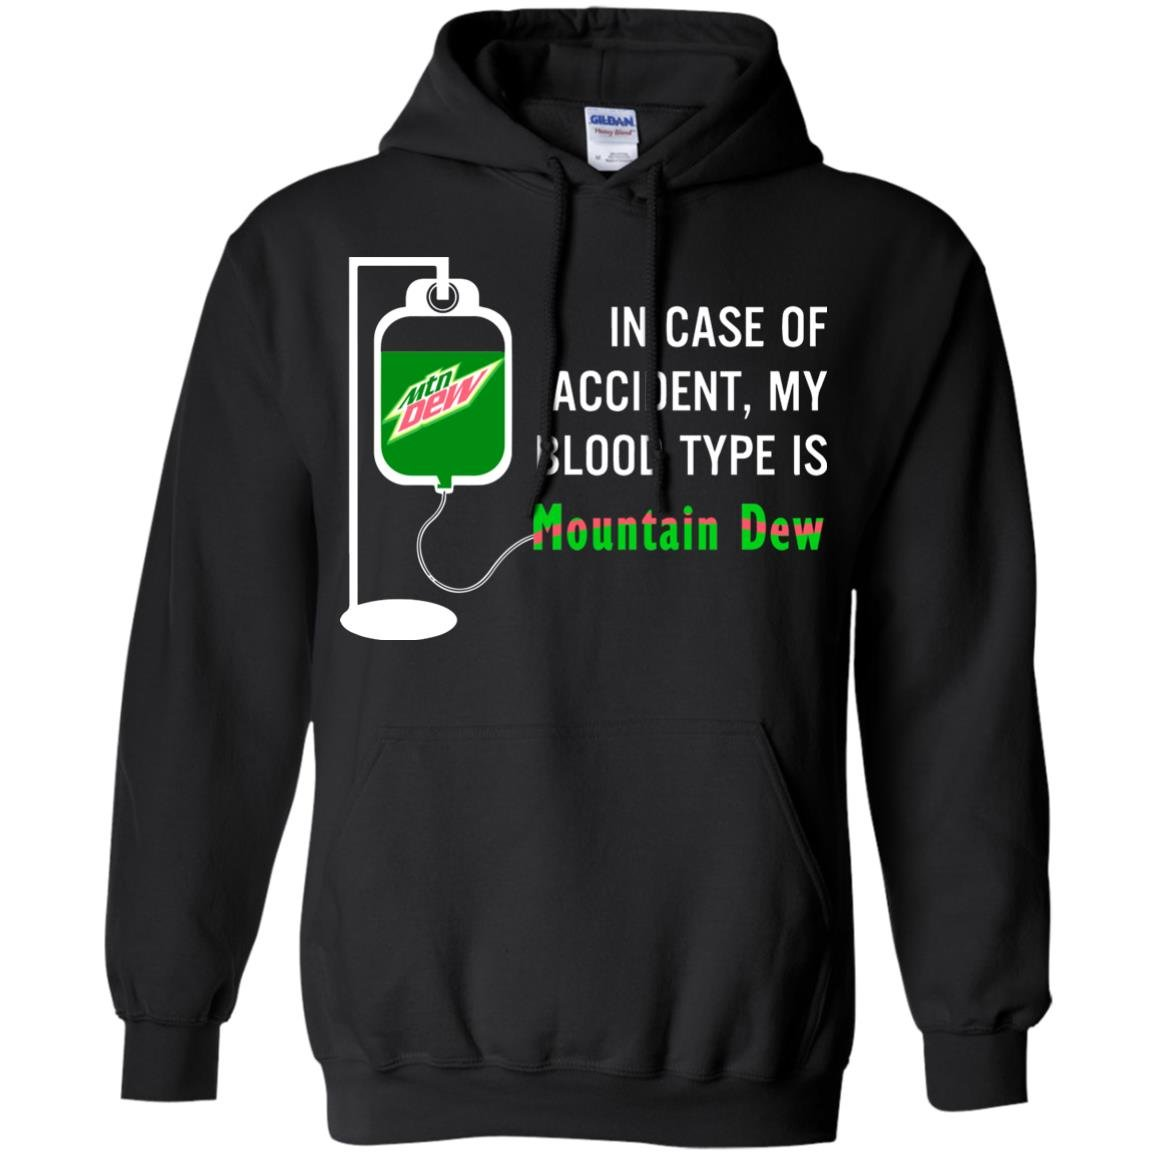 image 496 - In Case Of Accident My Blood Type Is Mountain Dew Shirt